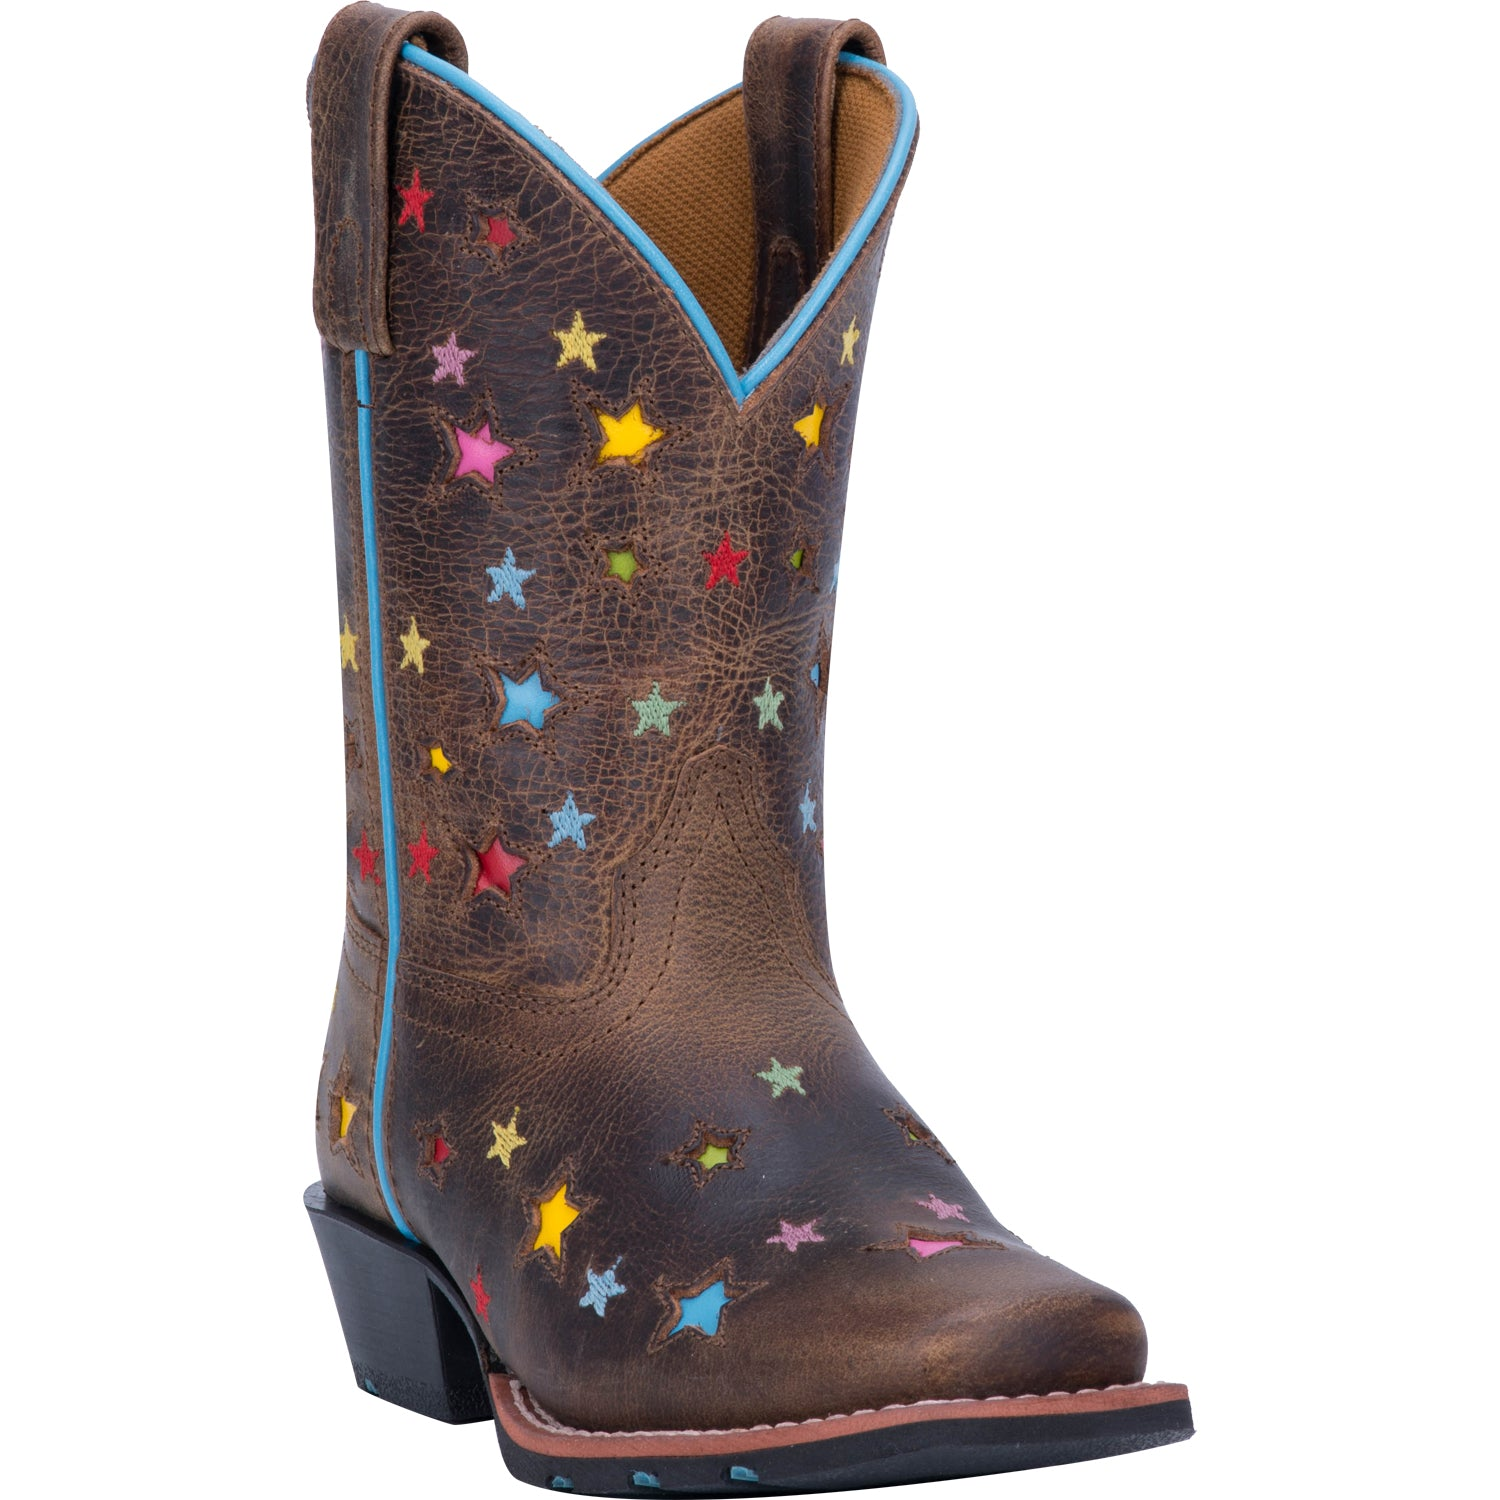 STARLETT LEATHER CHILDREN'S BOOT 4197204983850